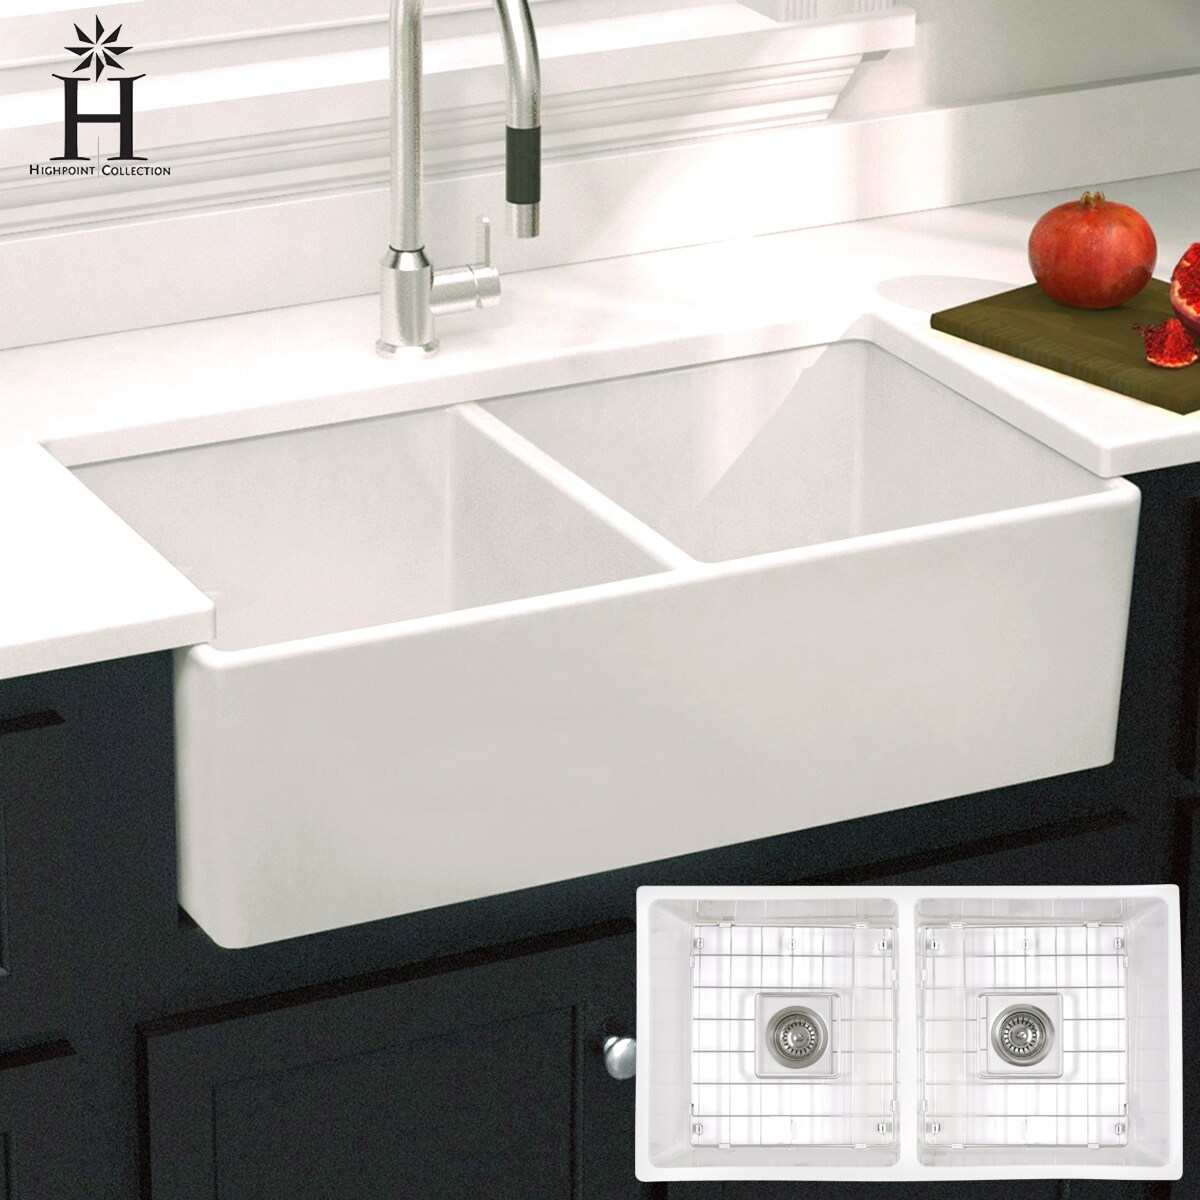 Stone Farmhouse Sink Lowest Price Farmhouse Sinks Shop Our Best Home Improvement Deals Online At